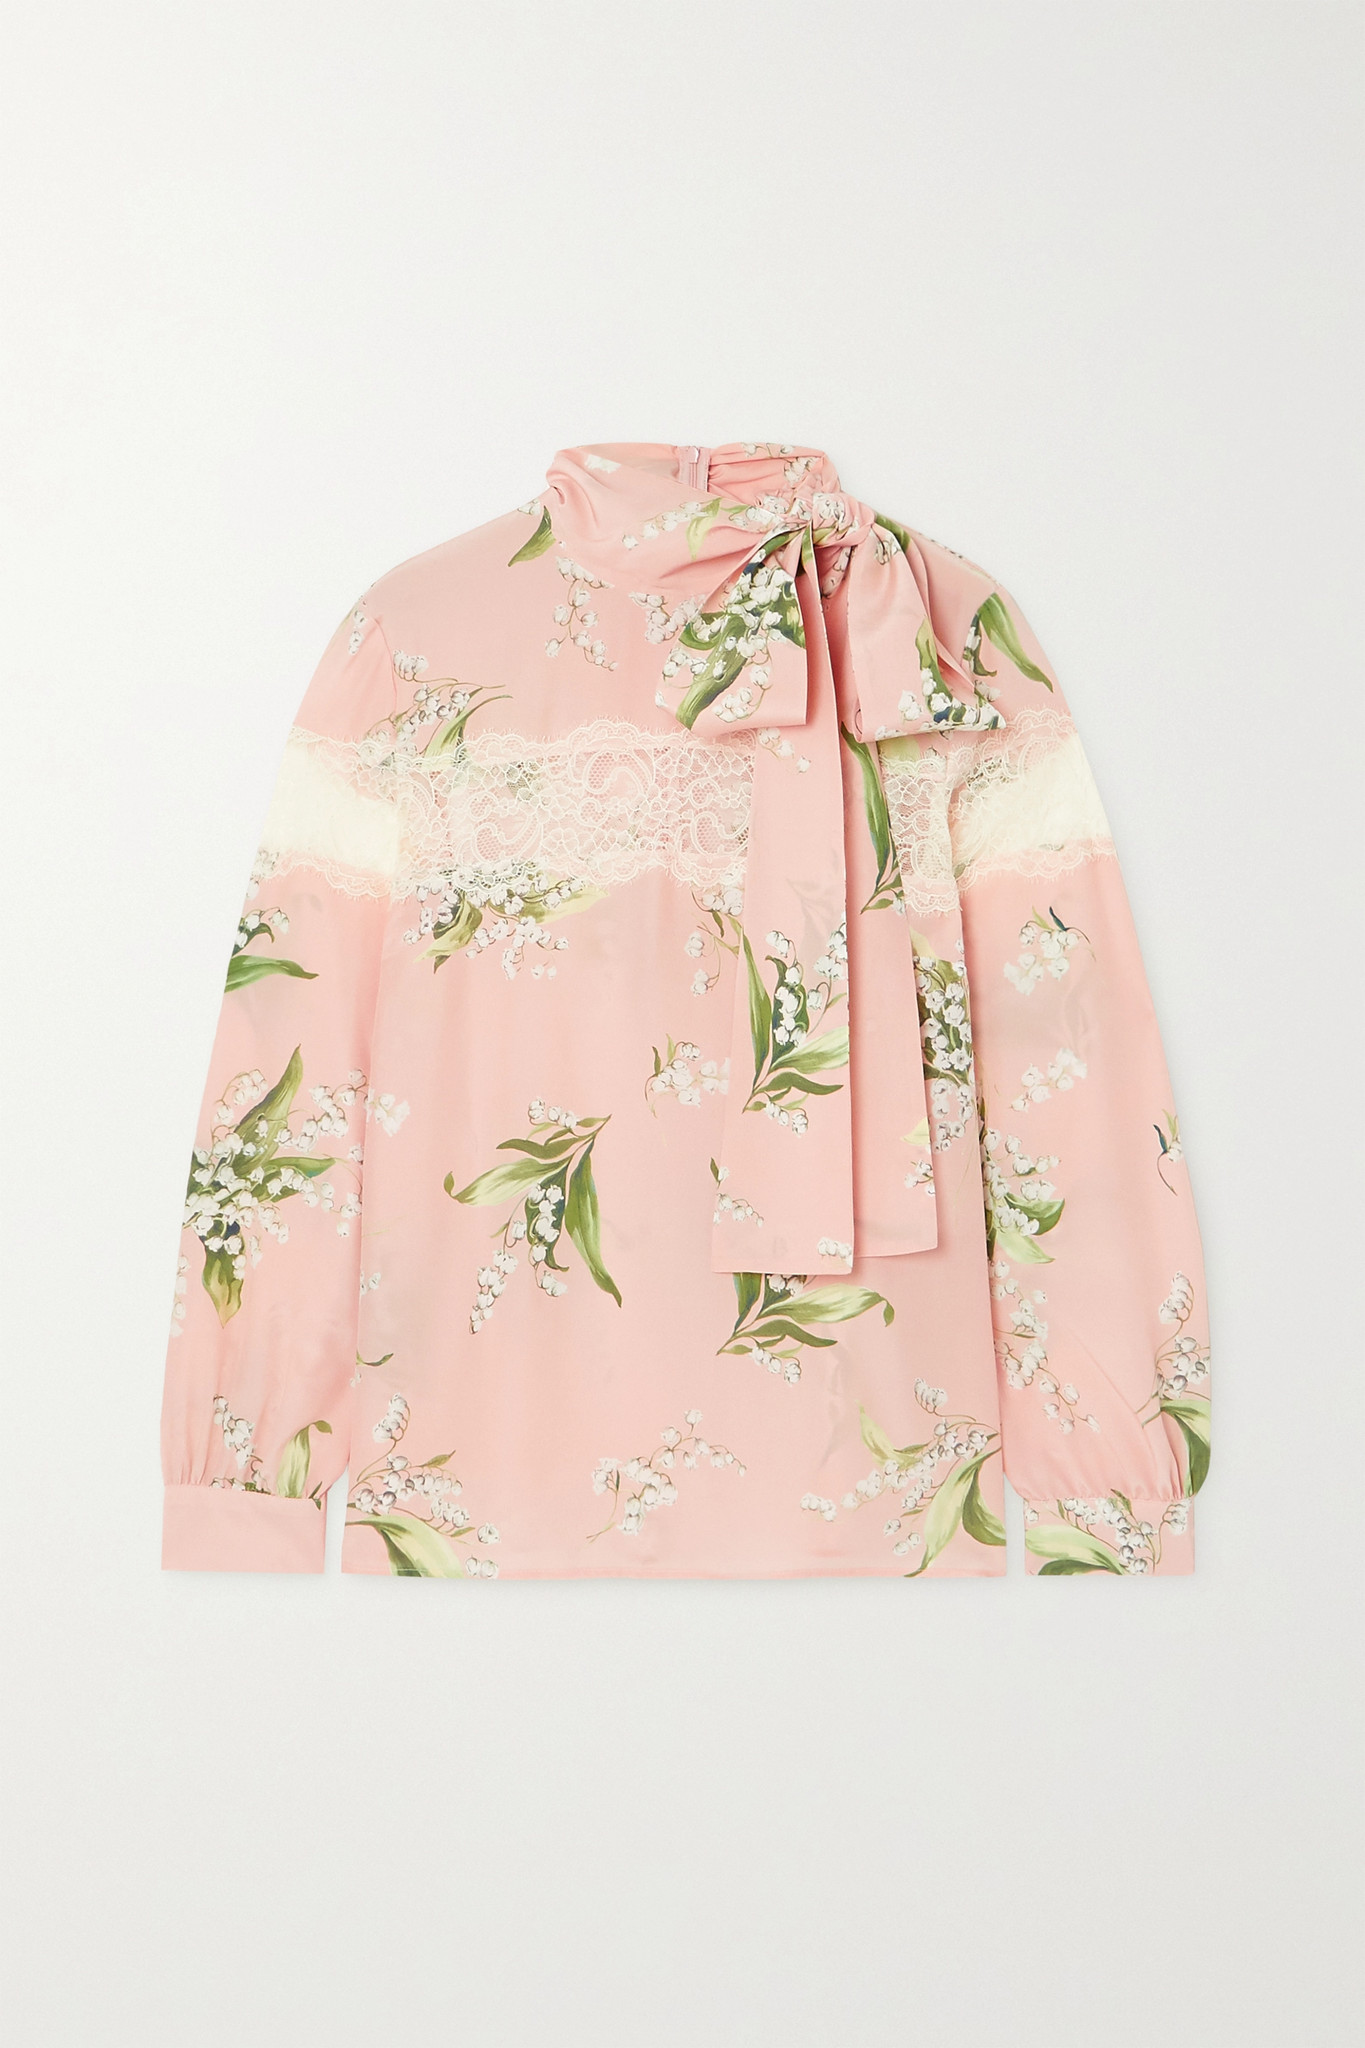 REDVALENTINO - Tie-detailed Lace-paneled Floral-print Silk Crepe De Chine Blouse - Pink - IT40